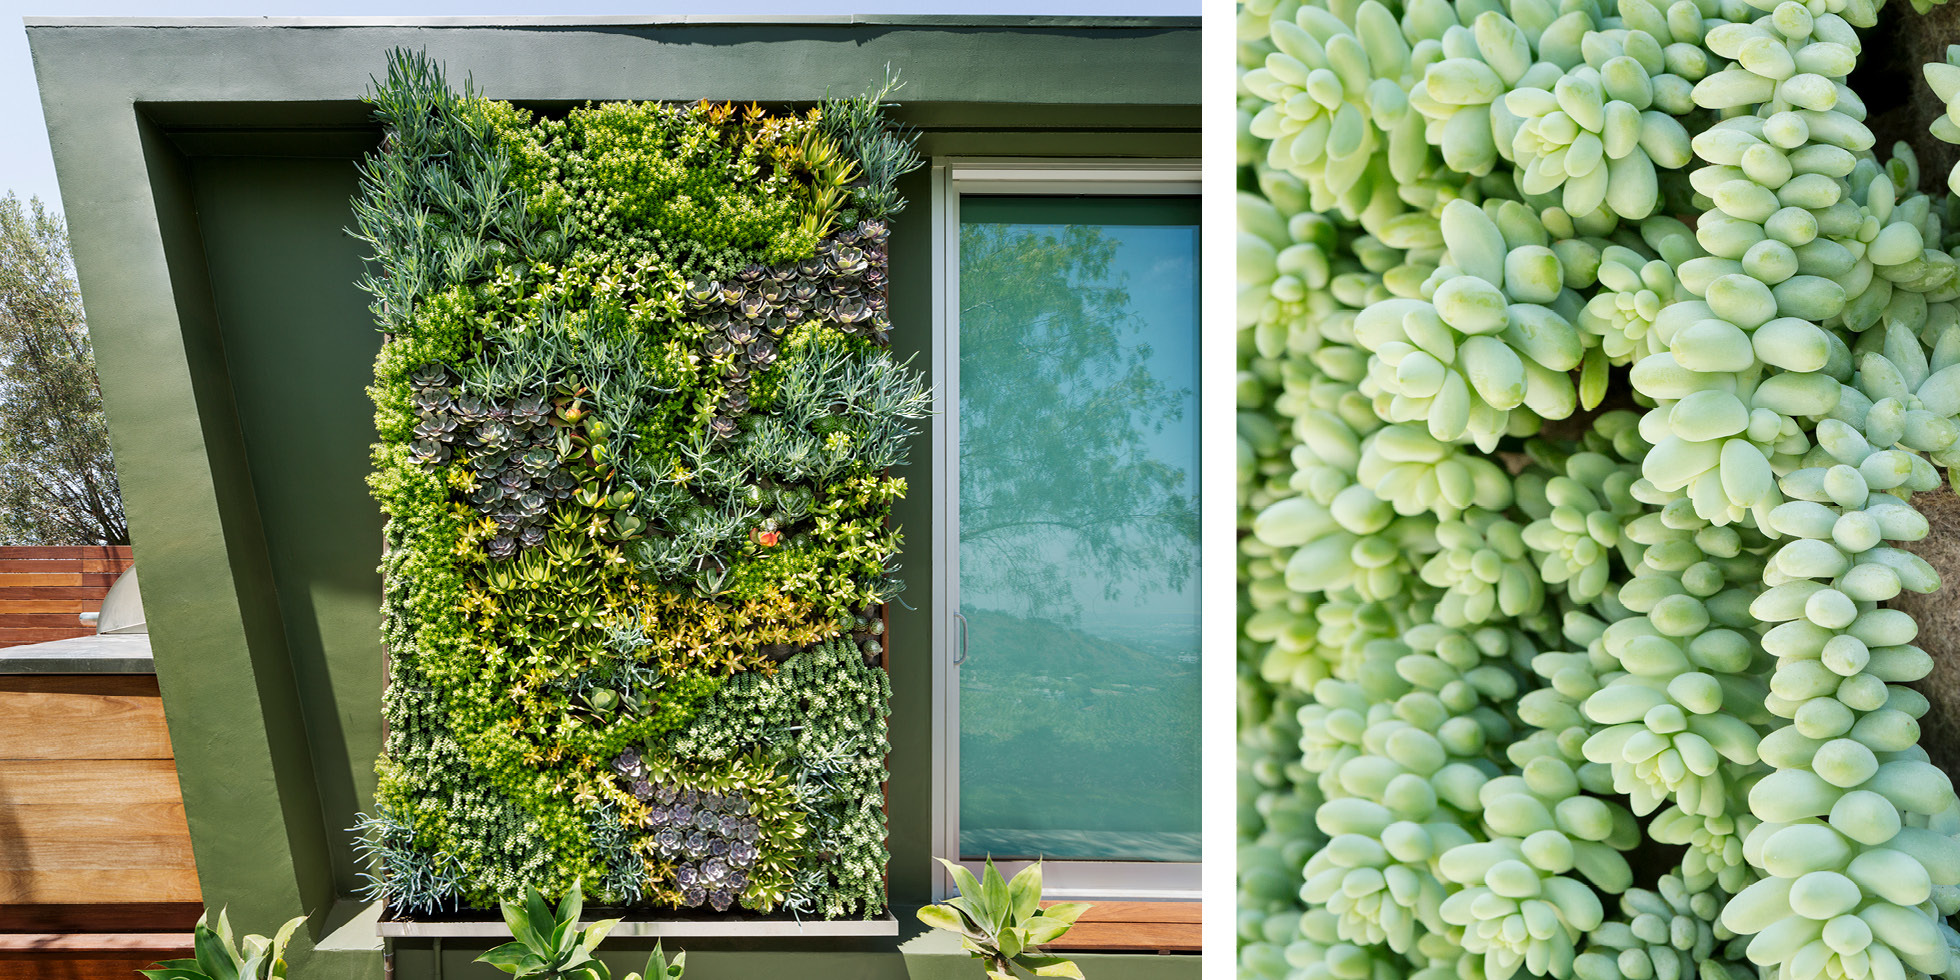 Private Residence Living Wall by Habitat Horticulture - View 1